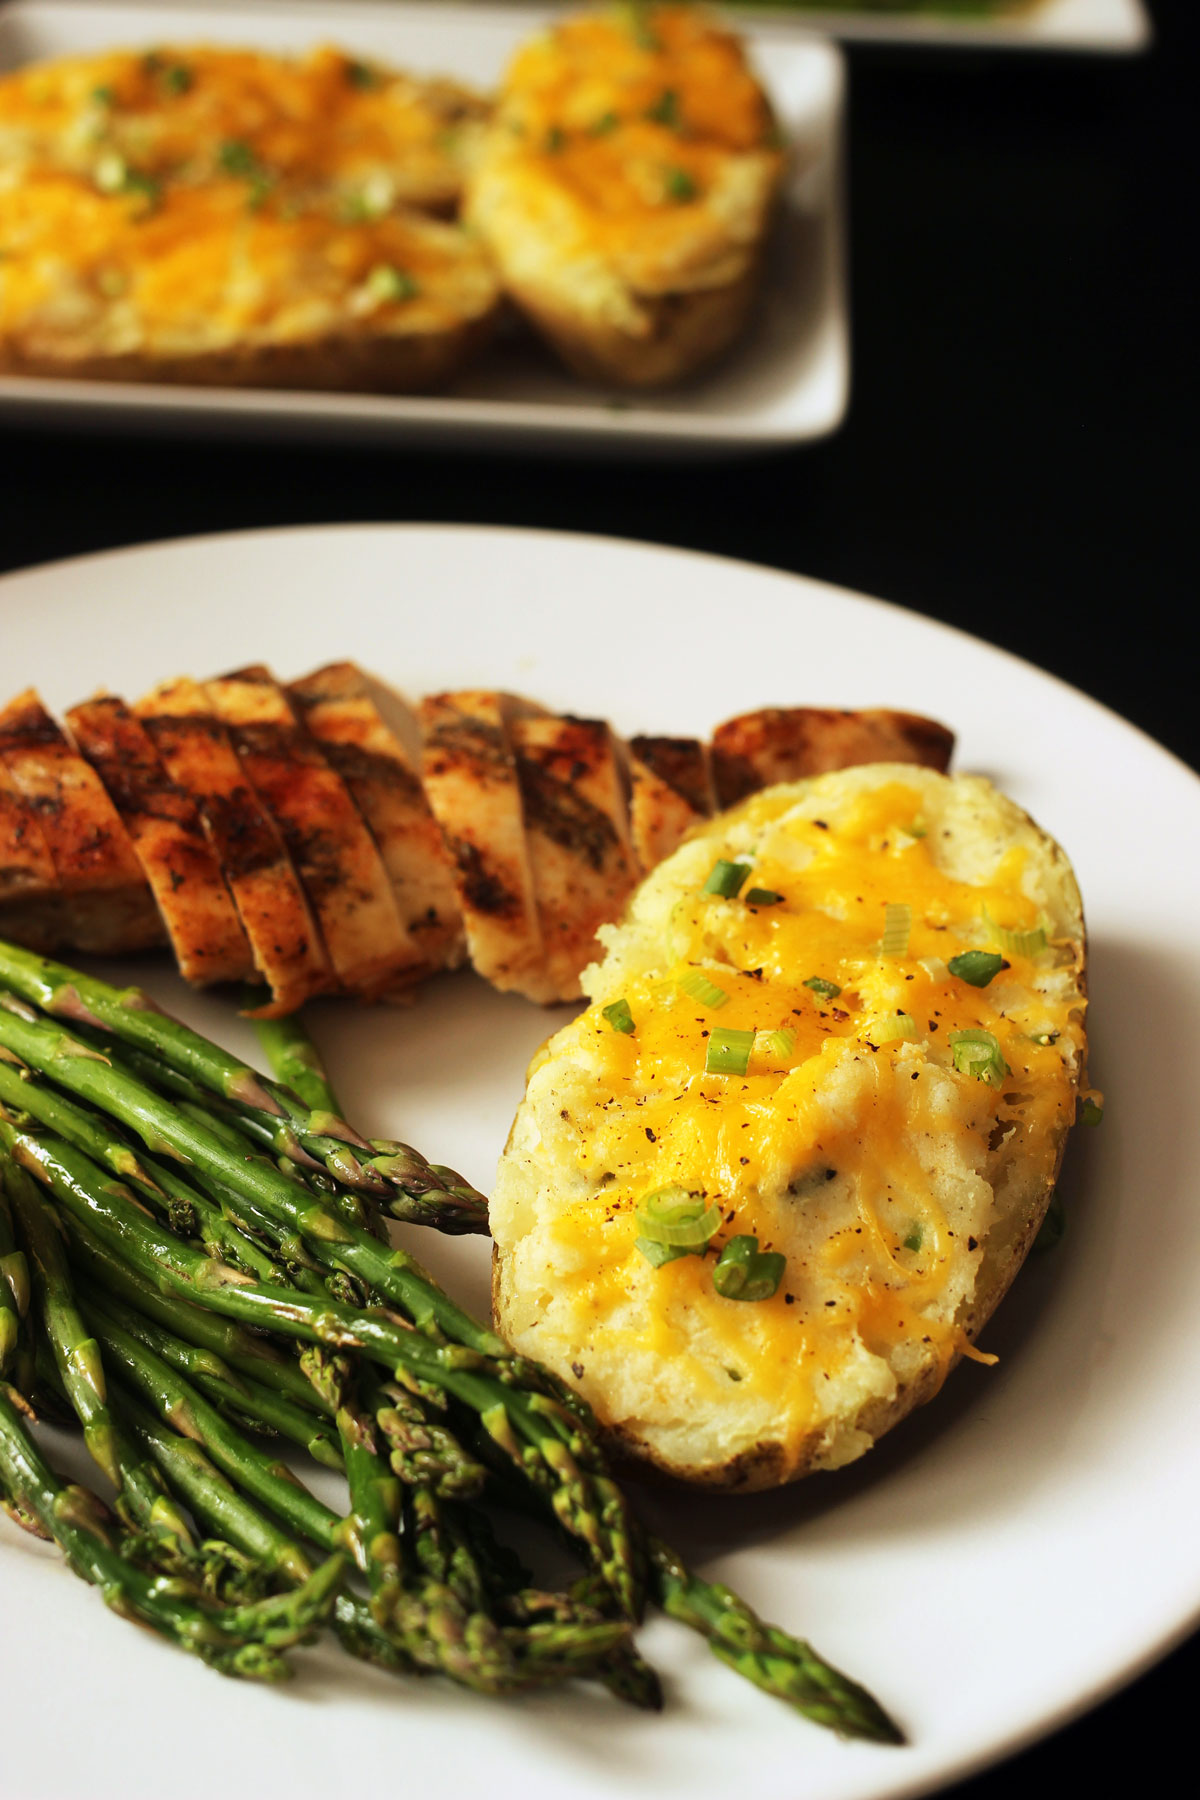 stuffed potato on dinner plate with meal